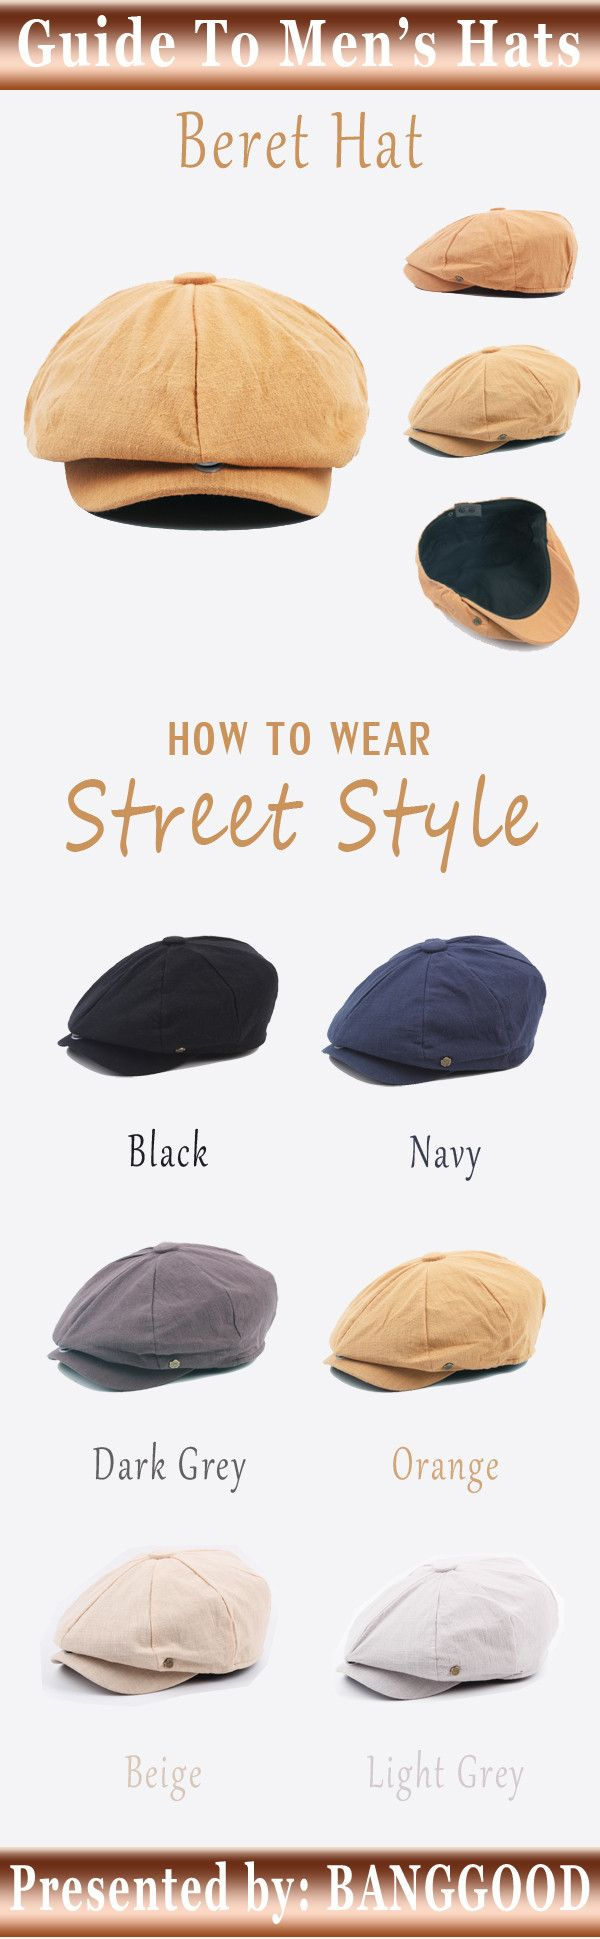 US$8.99+Free shipping. Mens Fashion, Beret Hat, Cowboy hat, Crochet hat, Baseball hat. Love this outdoor and street style of hat. Material: Cotton Blend. Color: Dark Grey, Light Grey, Orange, Black, Beige, Navy.